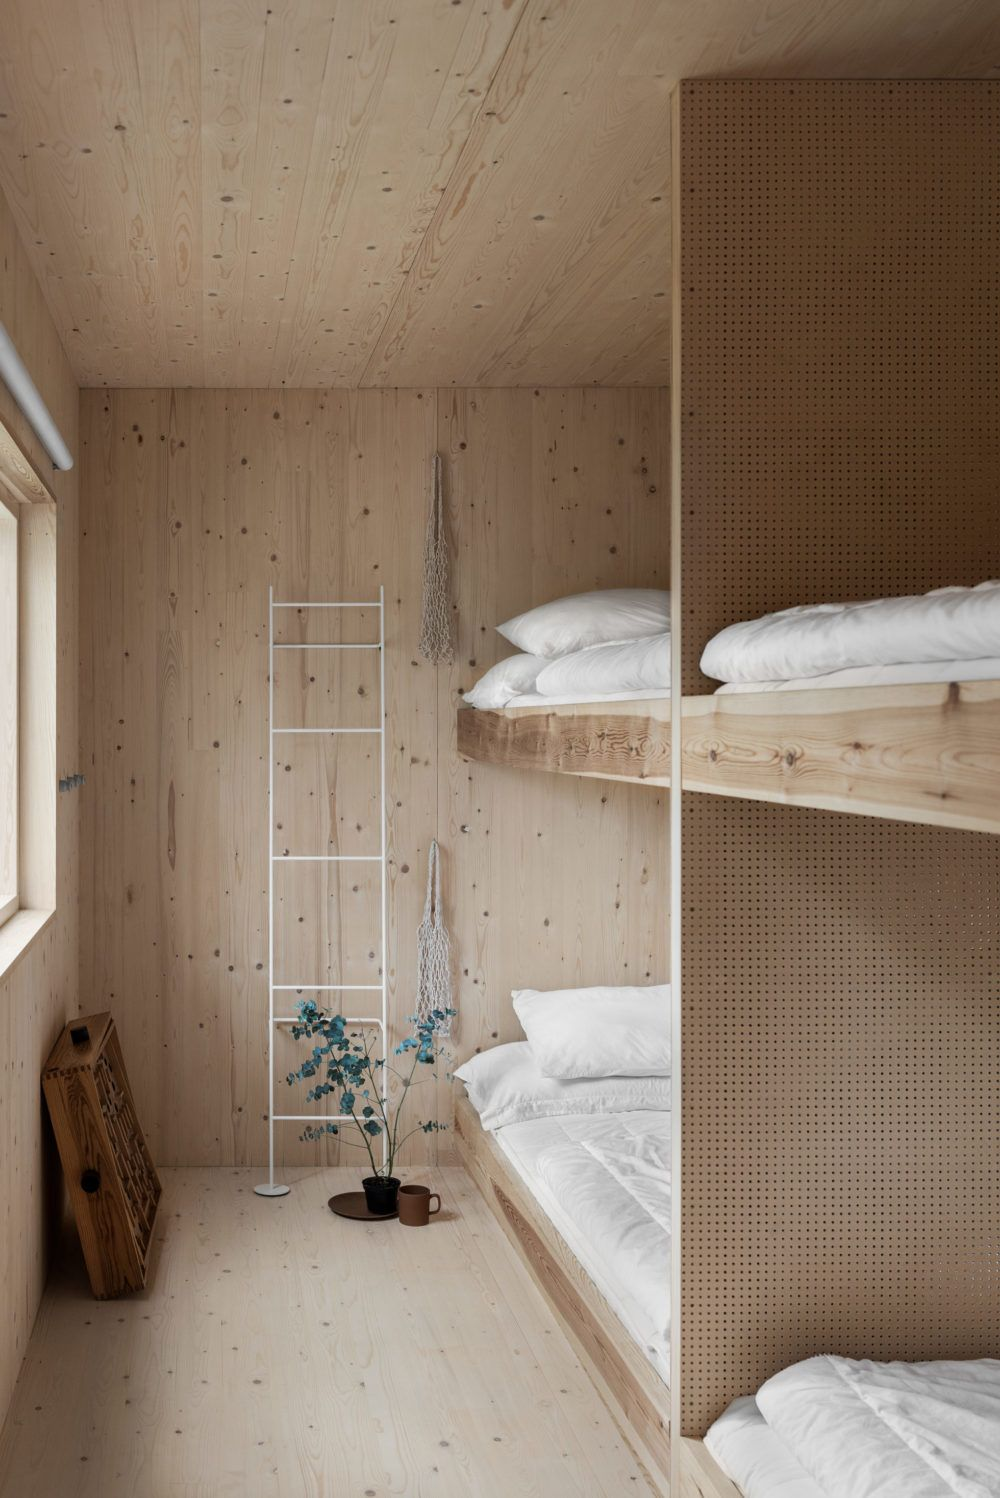 Minimal, Wooden & Swedish ... a Dreamy Summer House #houseinspiration